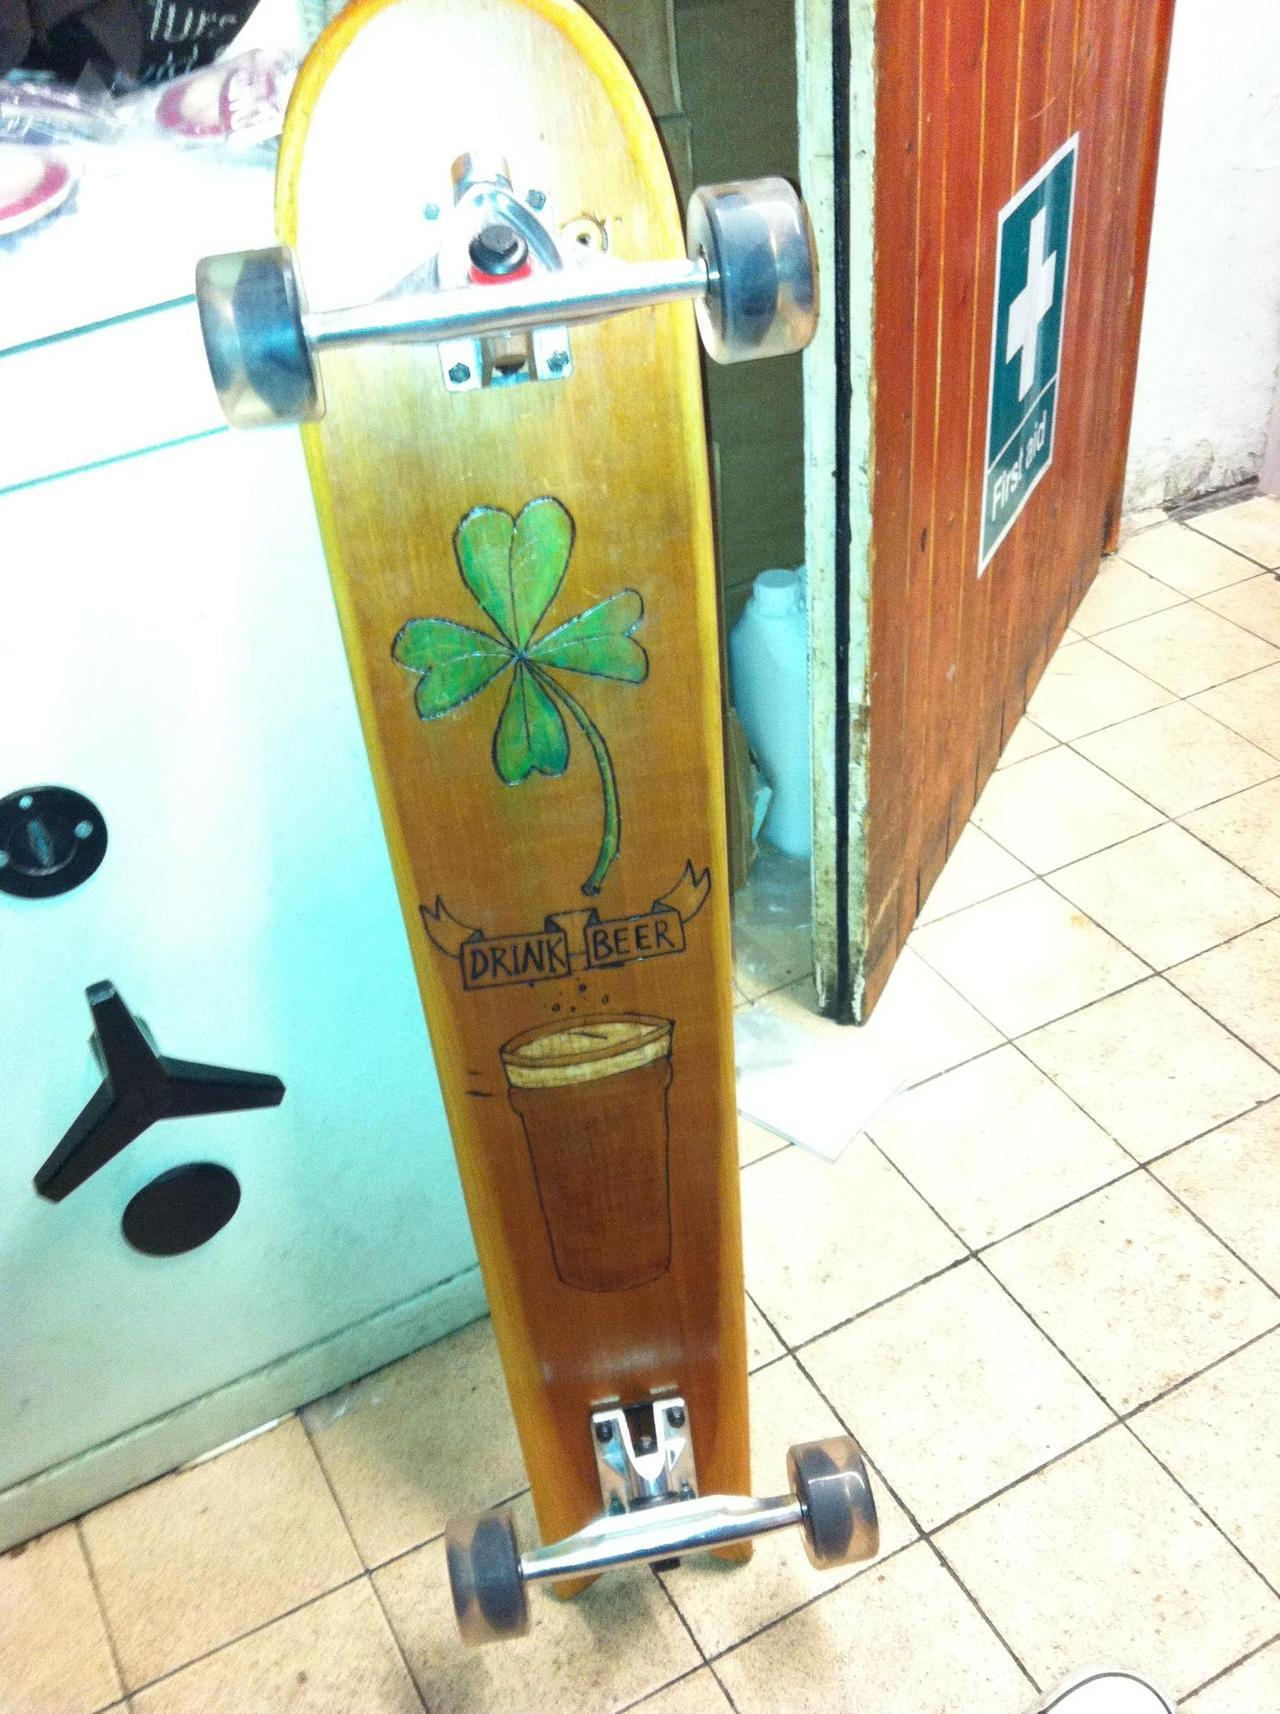 "Great day today, finally took delivery of my new custom made board from Alan Robertson, it really is amazing how he makes his boards, do yourself a favour and check out his blog in which he writes abut his boards, goings on and life, very interesting reading: http://barnsterlife.blogspot.co.uk/  On another note, we (The Thatch Croyde) hosted the St.Austell Brewery Board meeting and dinner evening (first time outside of the brewery) and had a great night, a menu tailored to their beers, using as ingredients and marrying the flavours to the dish. I also got a chance to try out my newly created Beer Flavoured Vodka as a palate cleanser…..went down a storm, getting the stern nod of approval from the head brewer (one of this guys beers won best beer in the world a few years back) and a request for another round with looks of astonishment and the repeat question of ""how the hell did you manage to make that?"". All in all, i've had a pretty sweet day!"